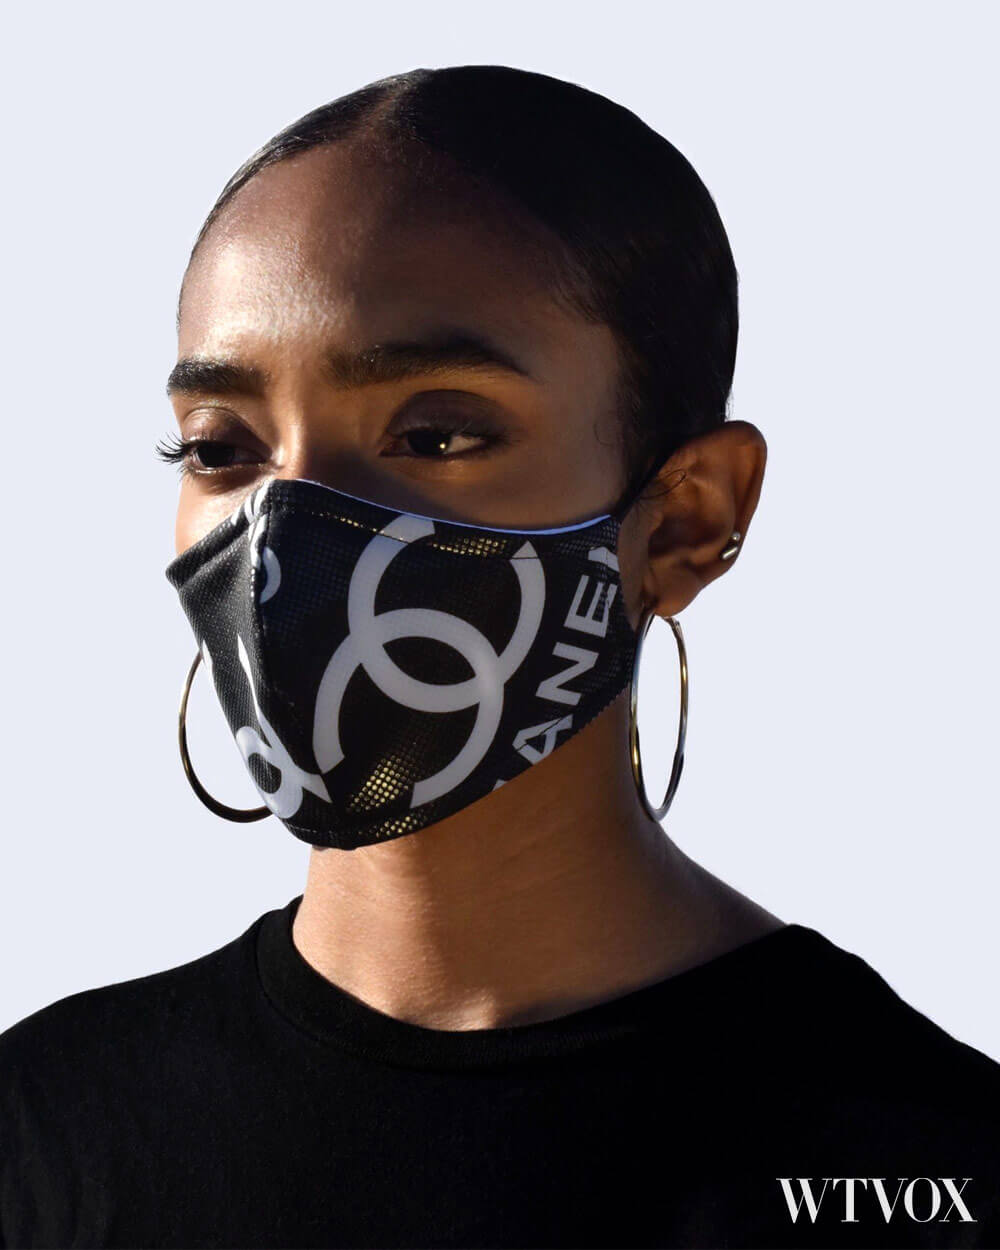 Where to buy Chanel face mask